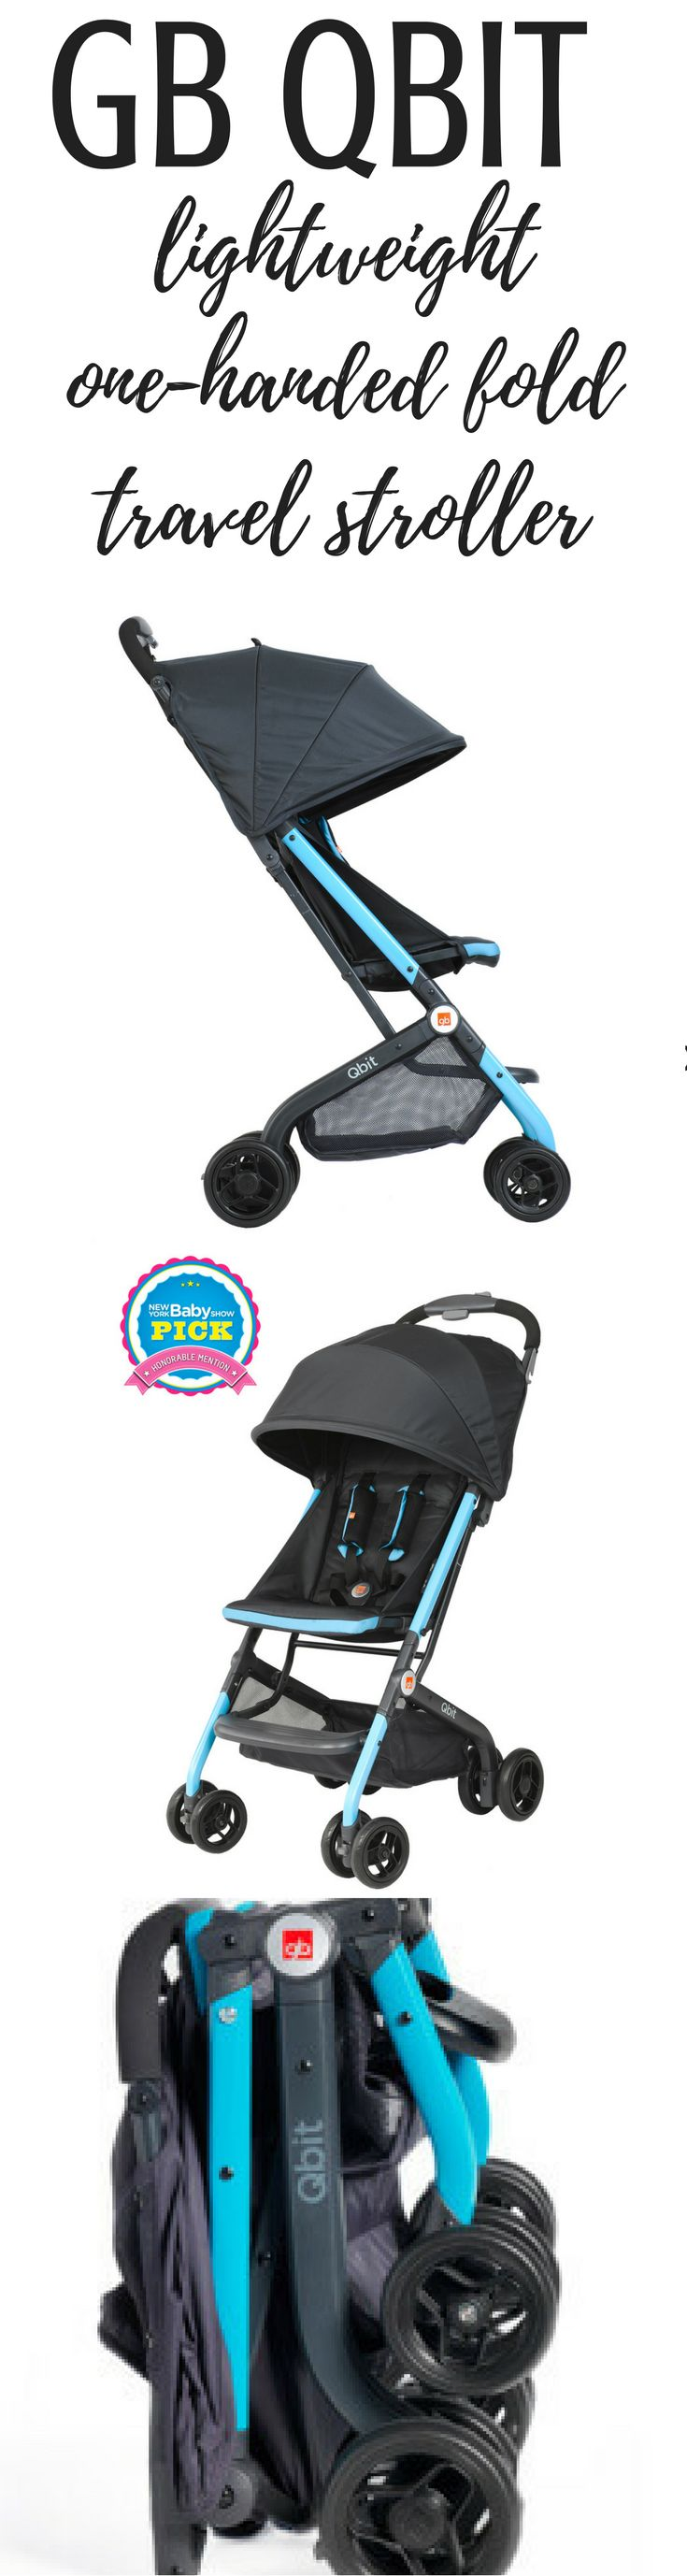 GB's Qbit - The Ultimate Lightweight Reclining Travel Stroller? This stroller has a one handed fold, stands upright while folded, isn't tippy.  Perfect travel stroller.  Read more on the blog!